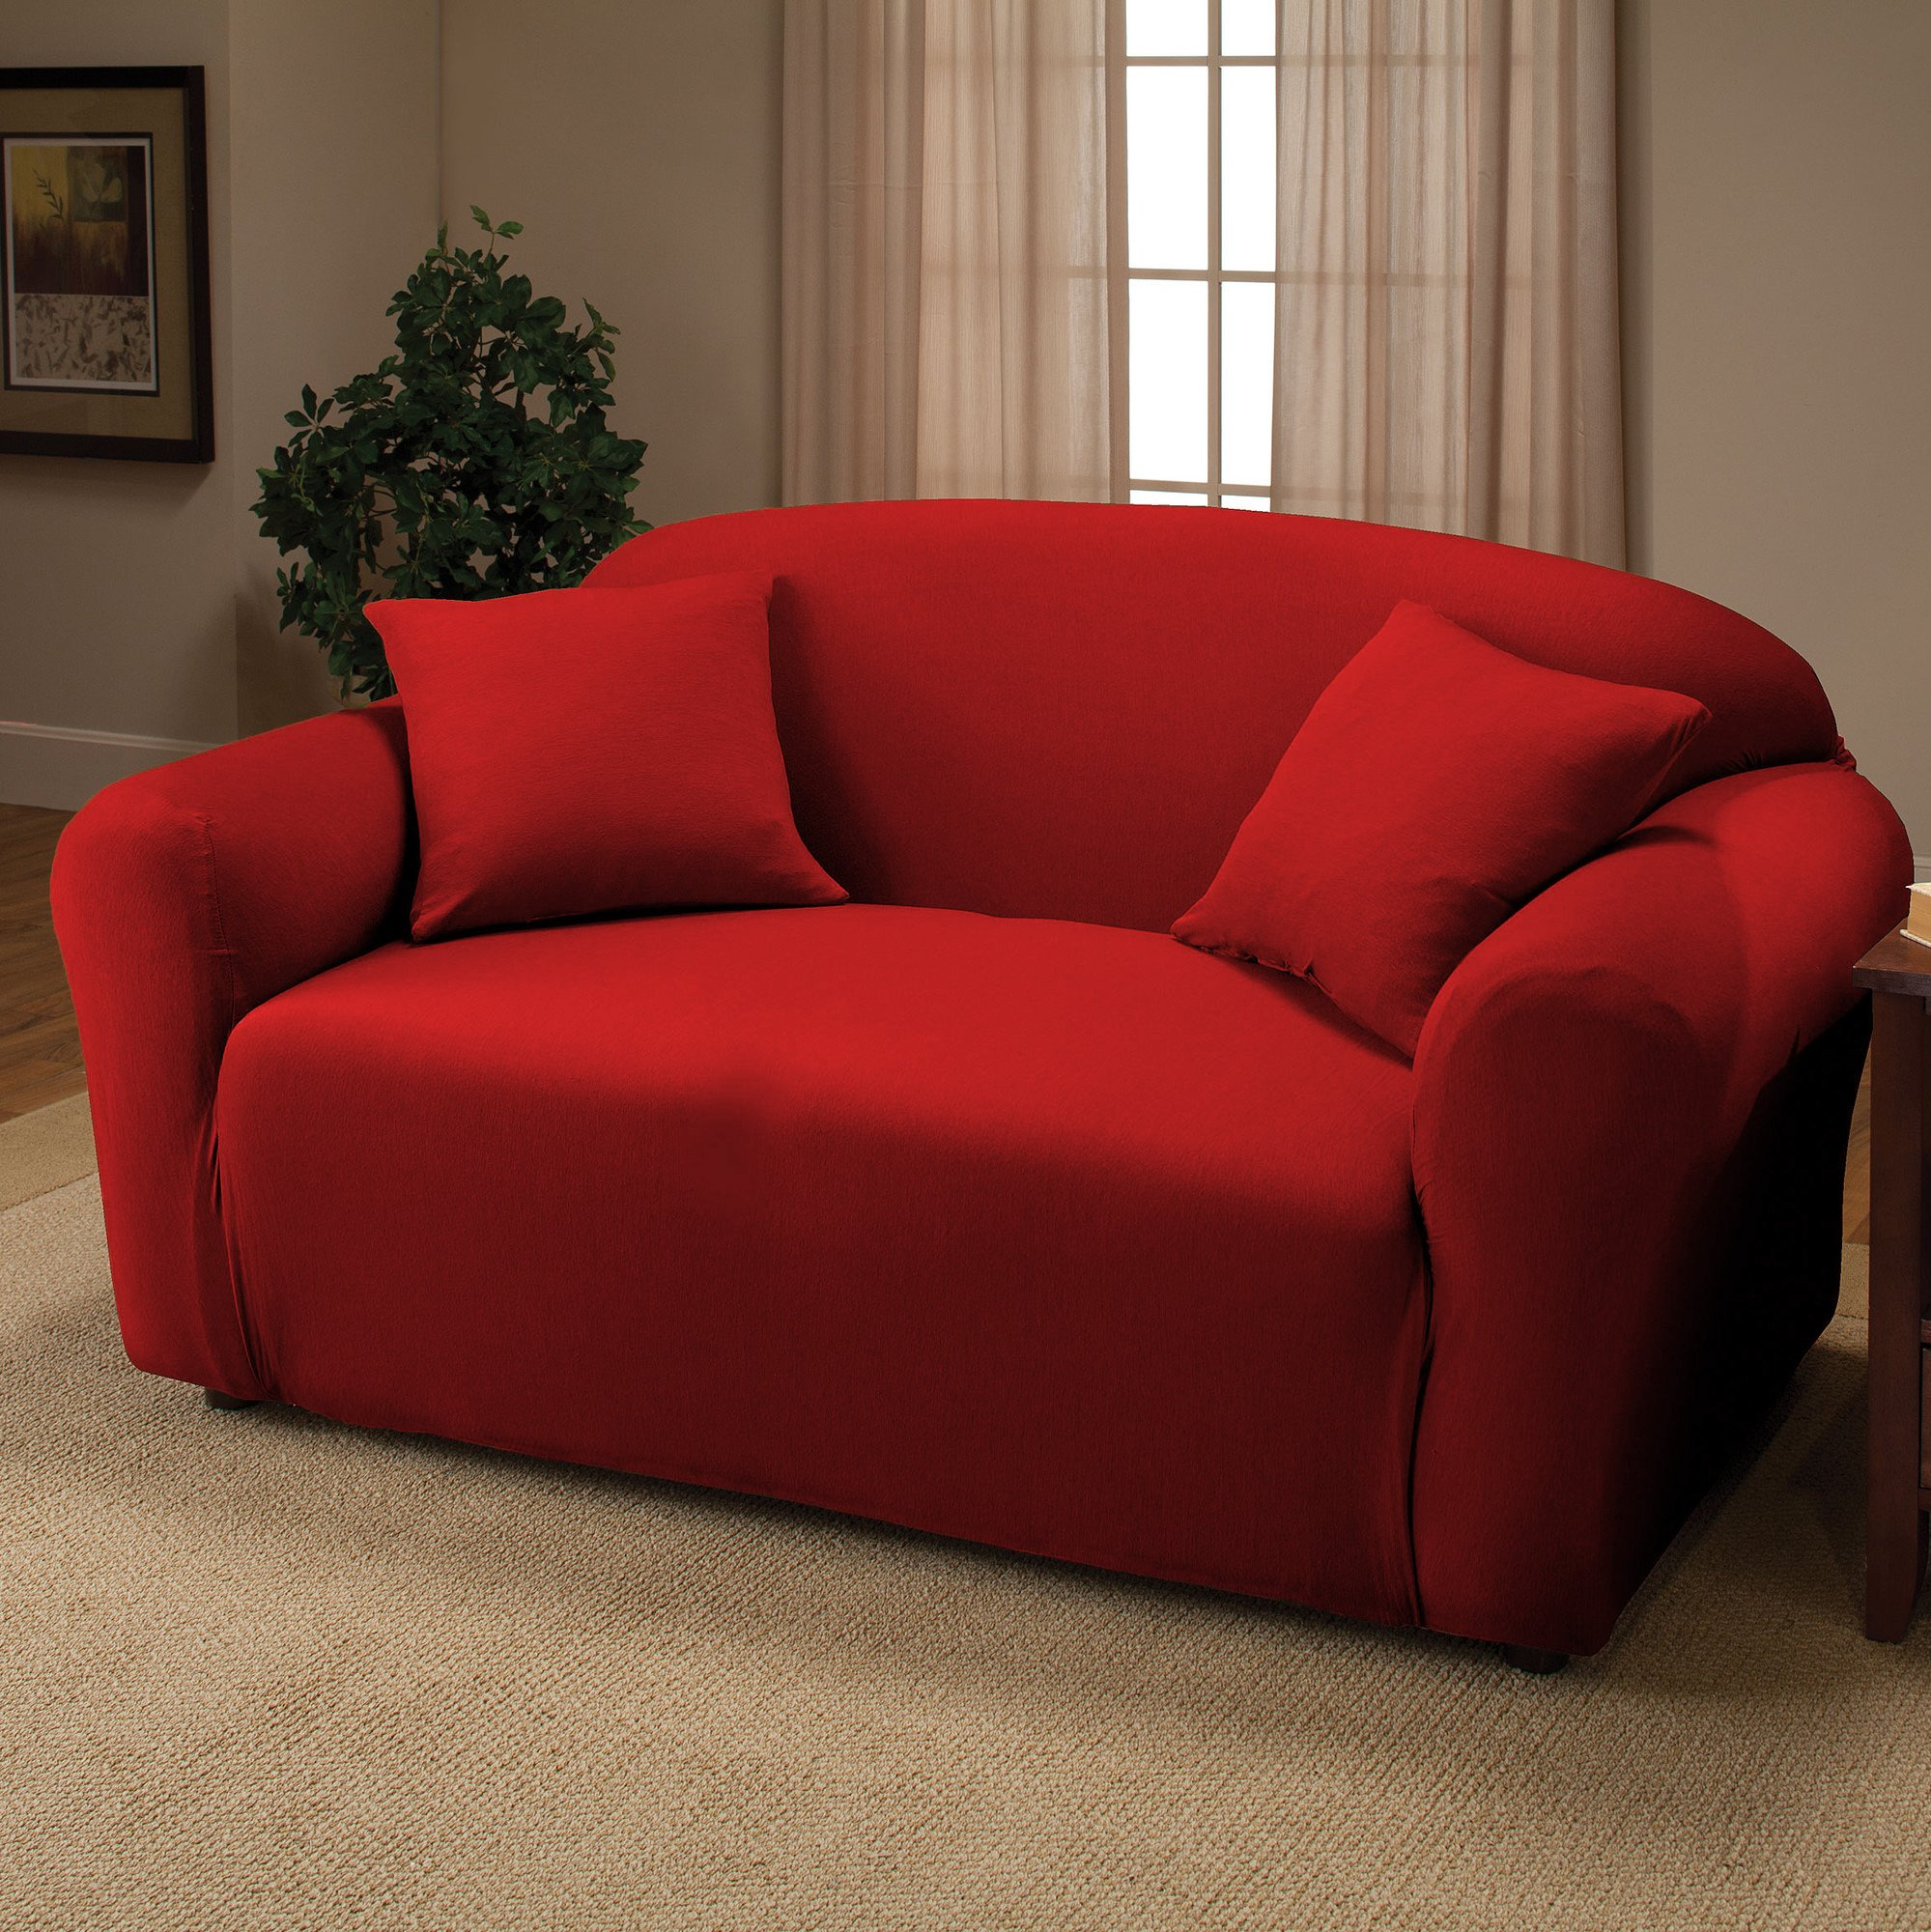 Jersey Stretch Furniture Slipcovers (Red, Loveseat)